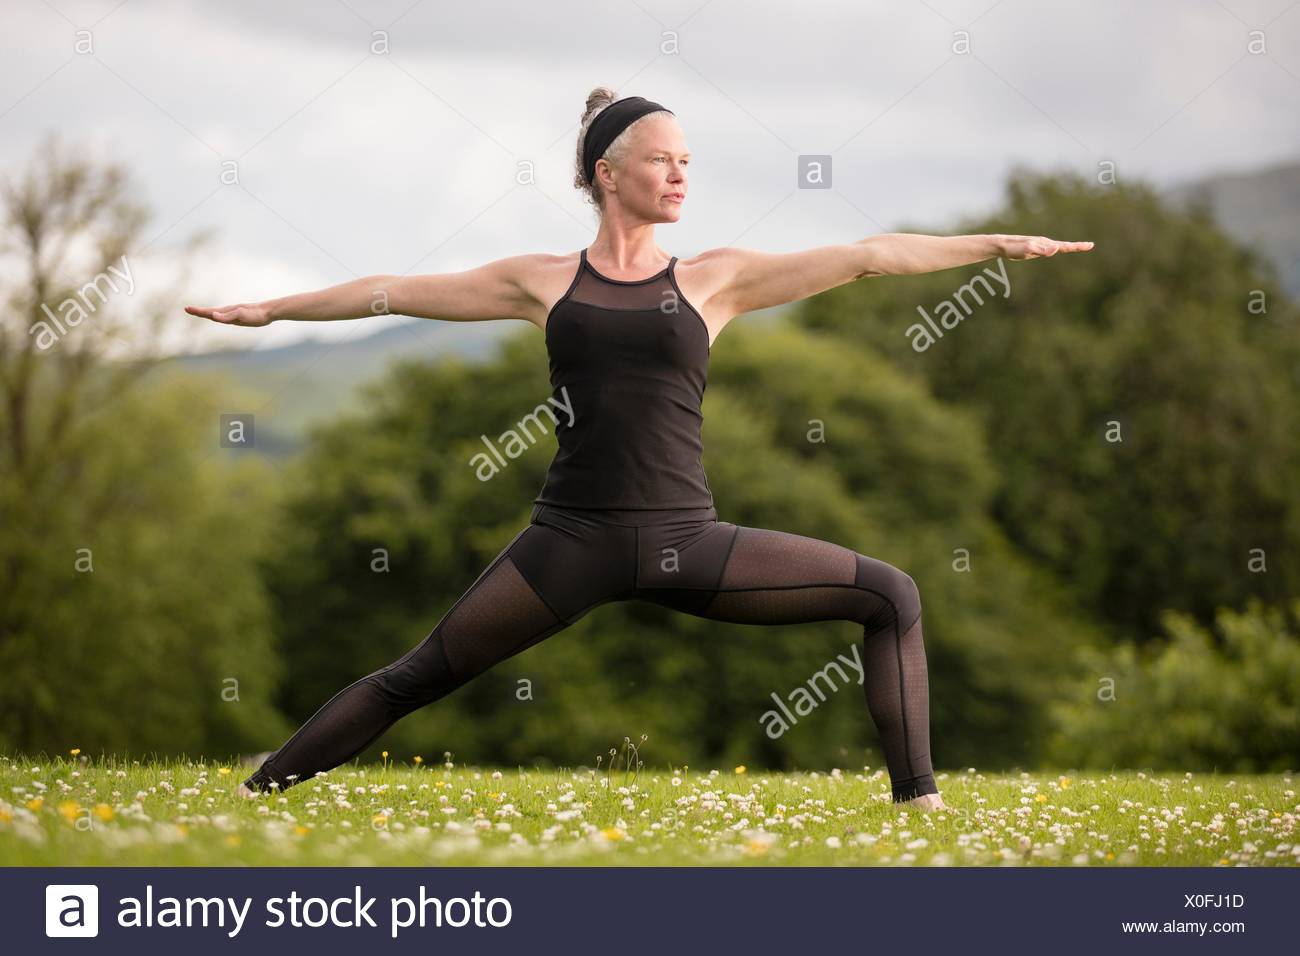 Mature woman practicing yoga reversed warrior pose with arms open in field - Stock Image